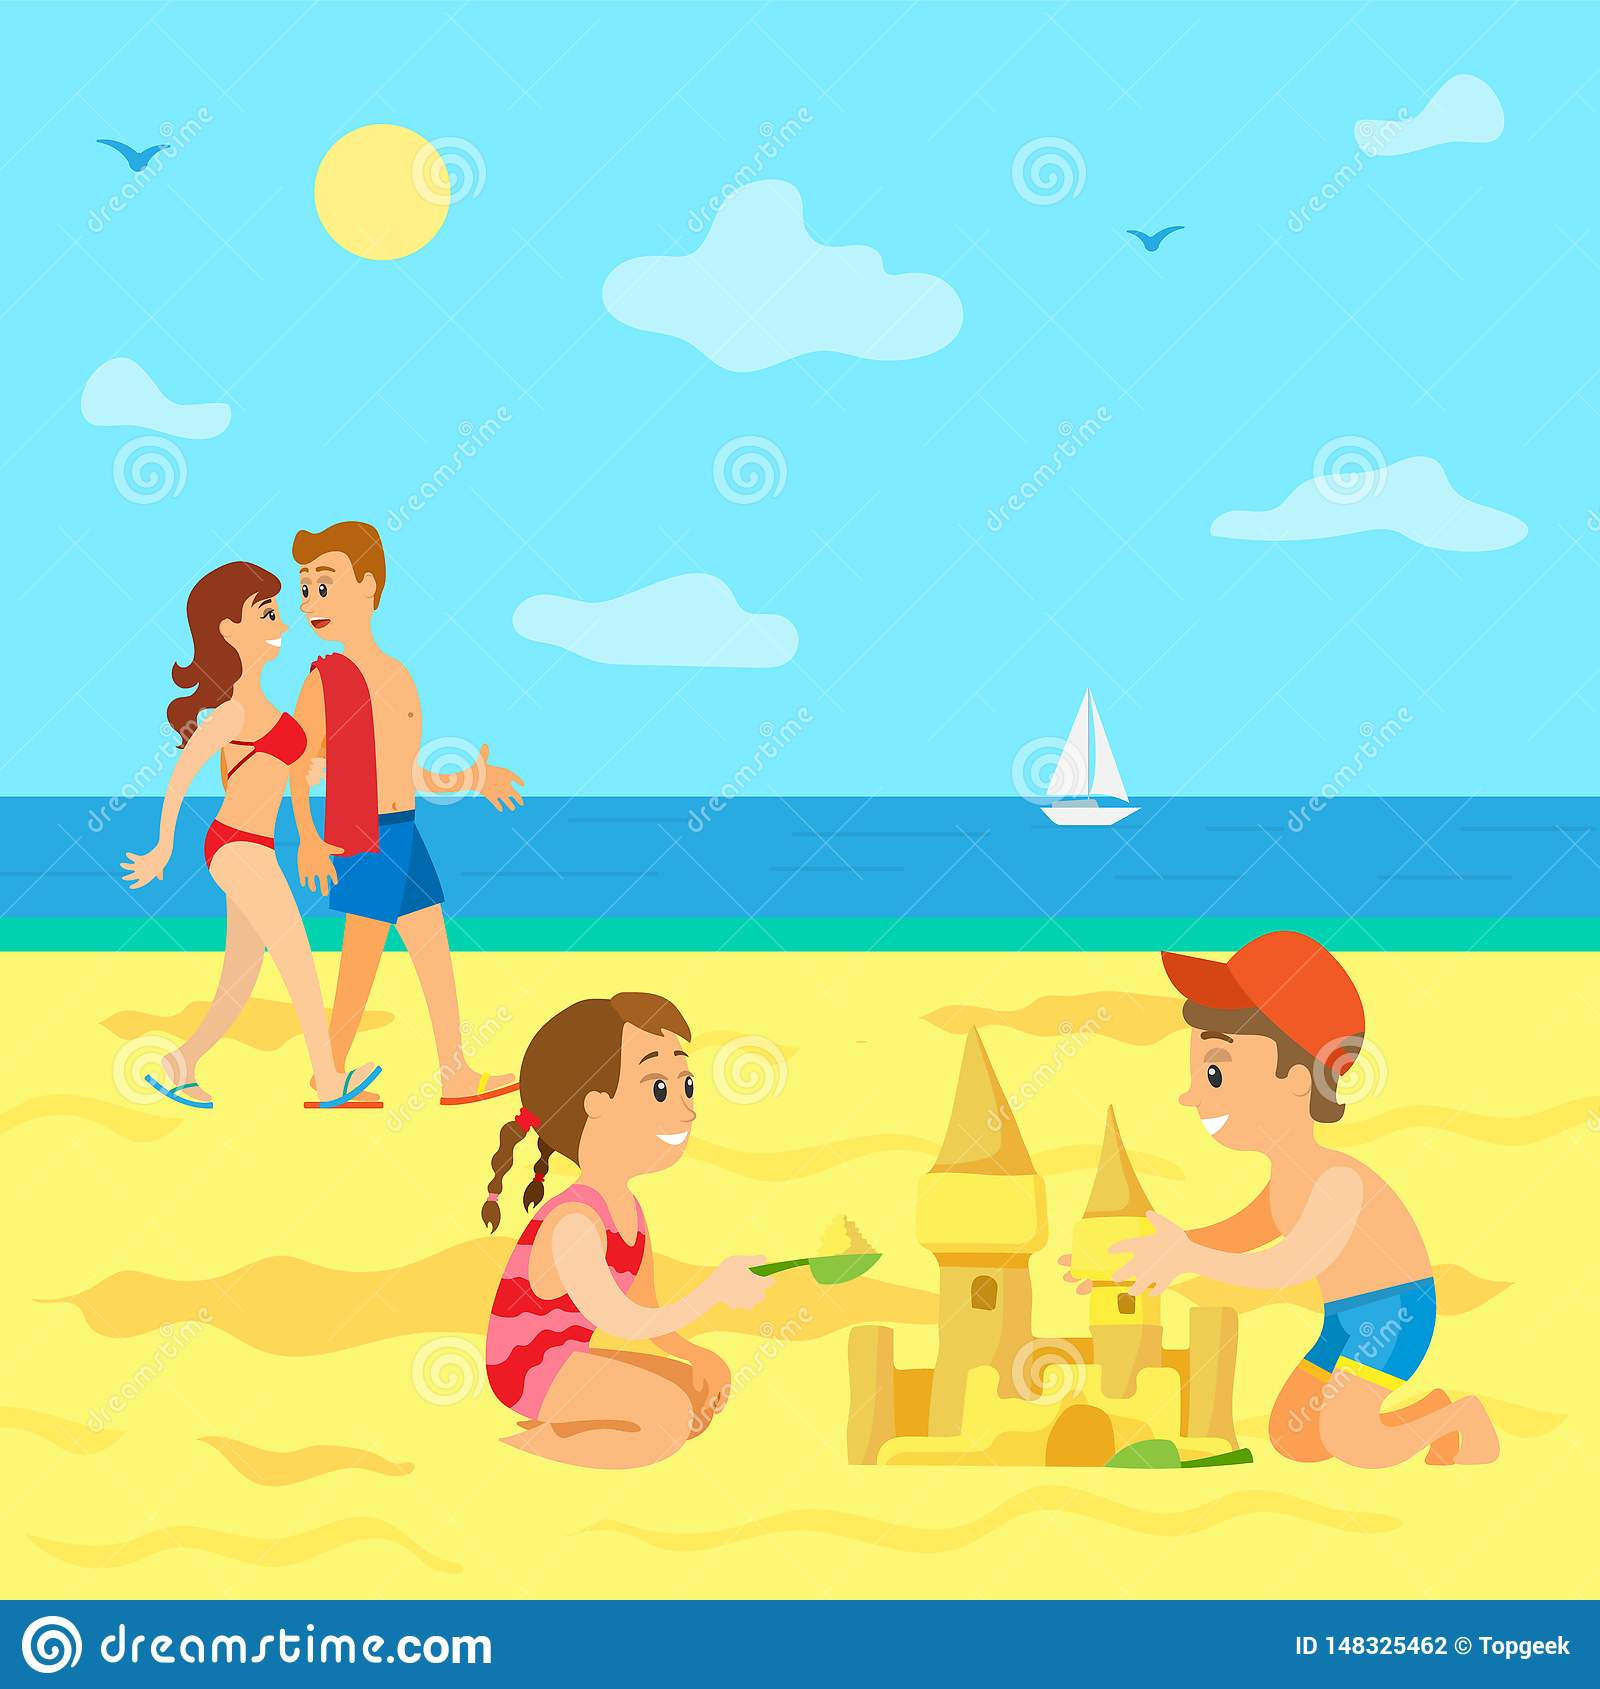 Kids Playing On Beach Summer Vacation Of Children Stock Vector Illustration Of Female Build 148325462